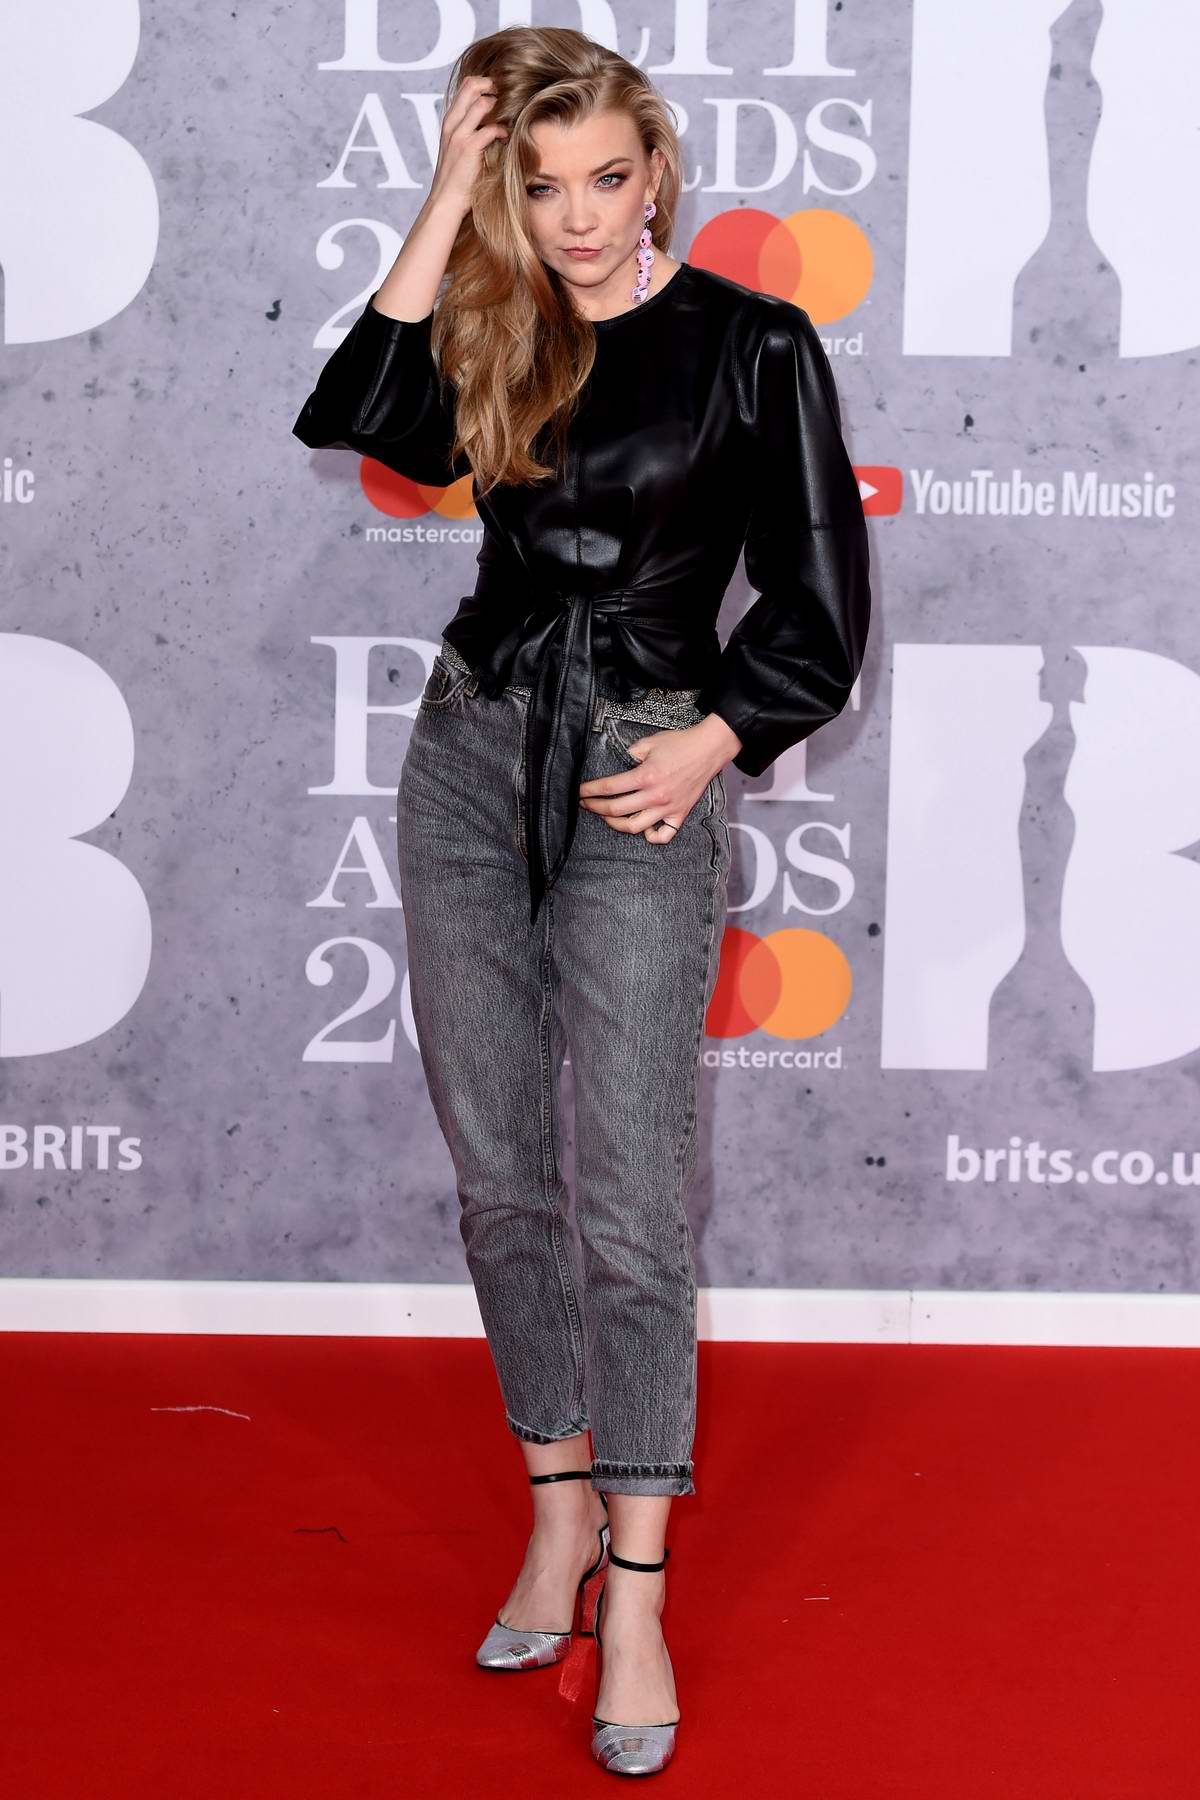 Natalie Dormer attends The BRIT Awards 2019 held at The O2 Arena in London, UK